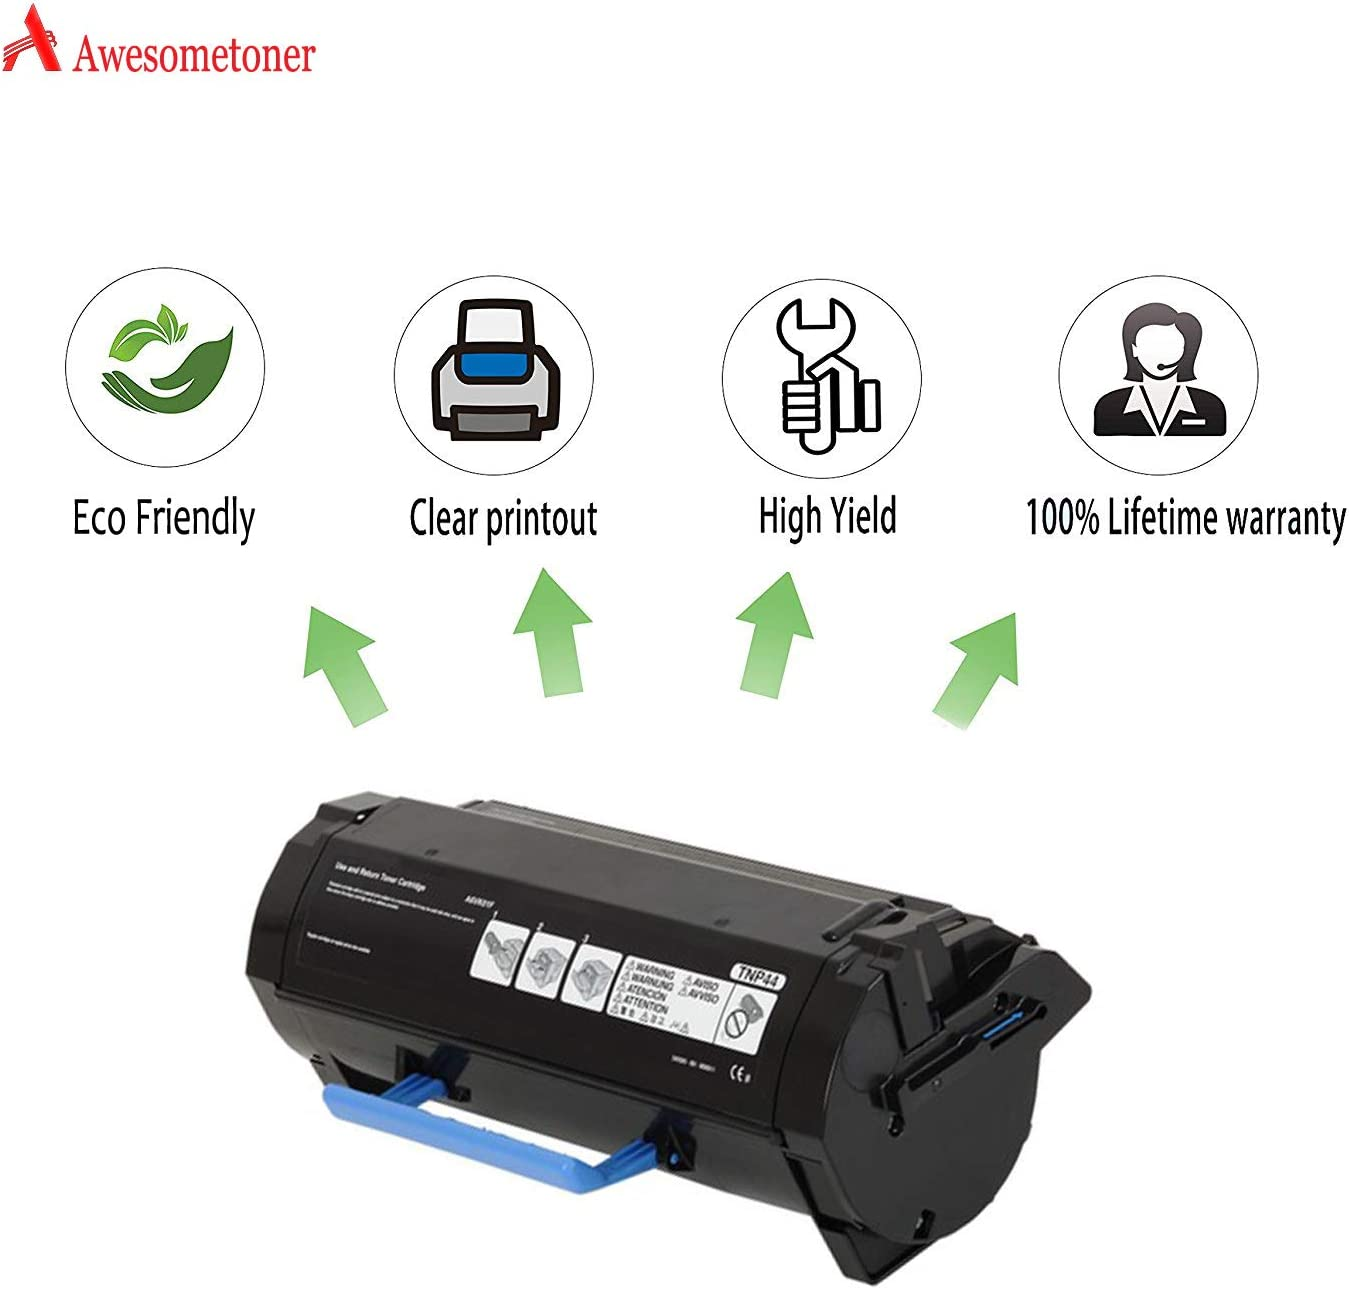 4750 Black, 2-Pack Awesometoner Compatible Toner Cartridge Replacement for Konica Minolta TNP44 TNP46 A6VK01F A6VK01W MICR use with BizHub 4050